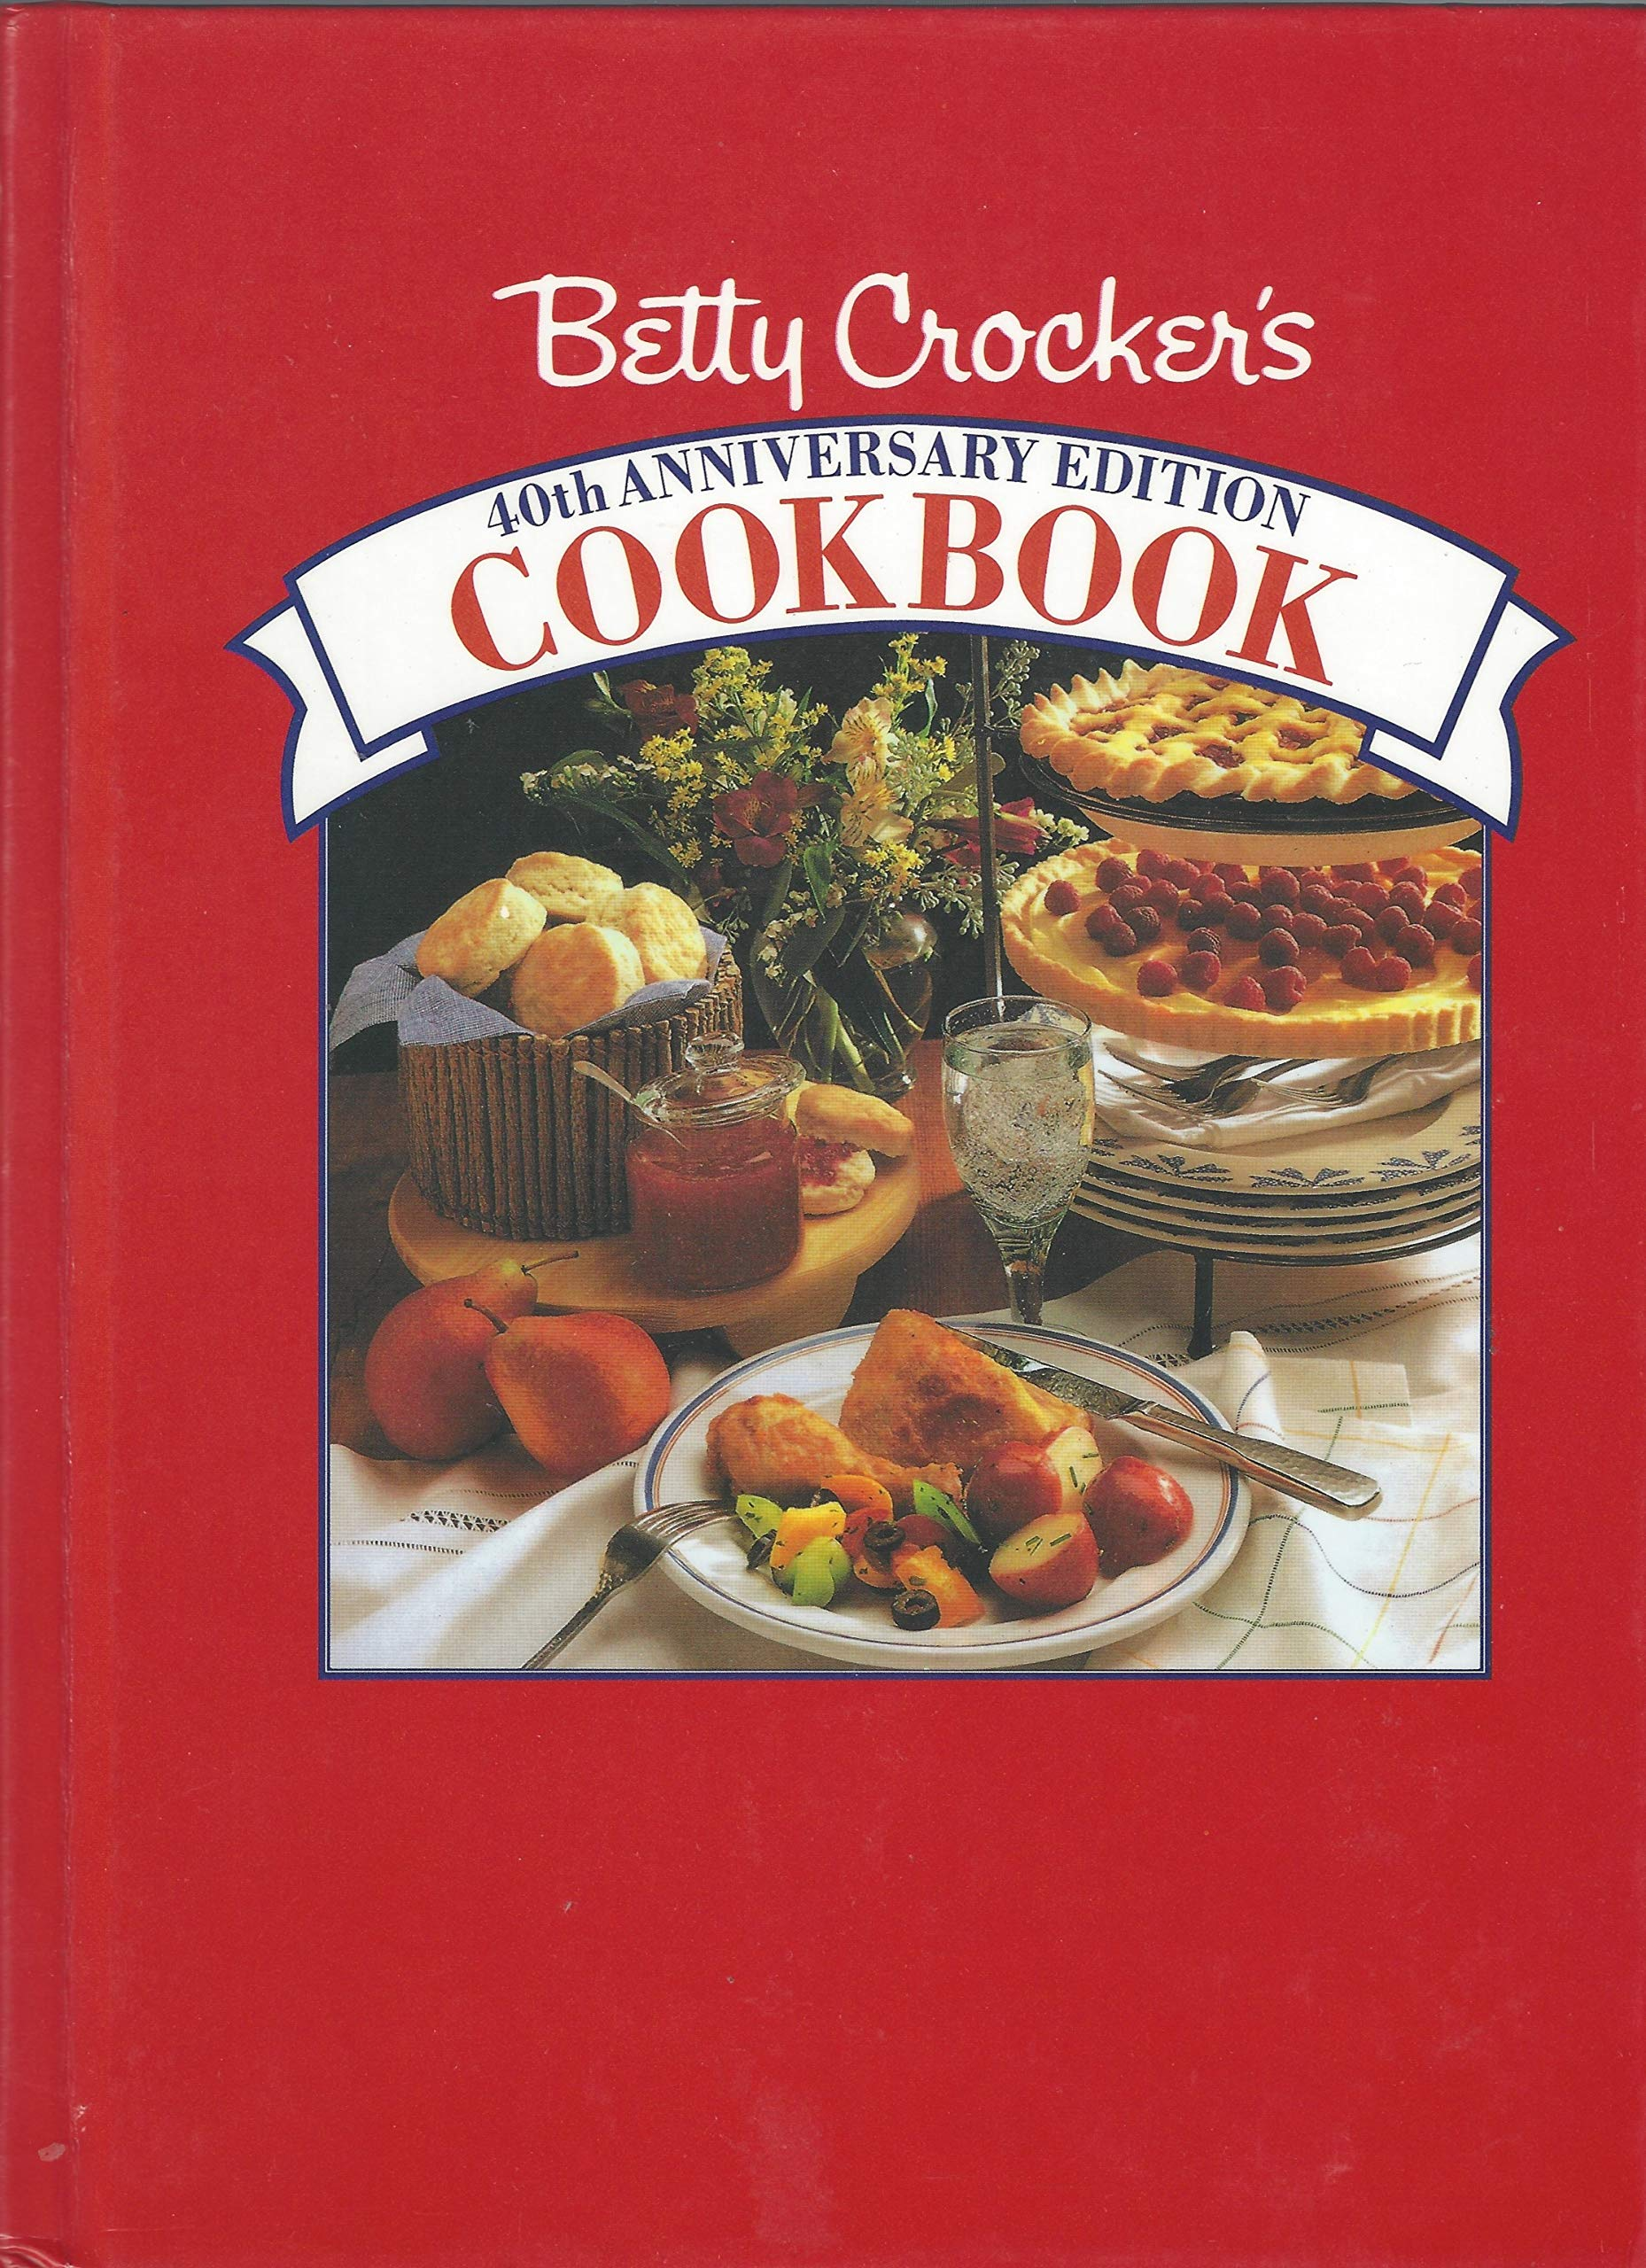 Betty Crocker's Cookbook/40th Anniversary Edition: Betty Crocker:  9780130737687: Amazon.com: Books